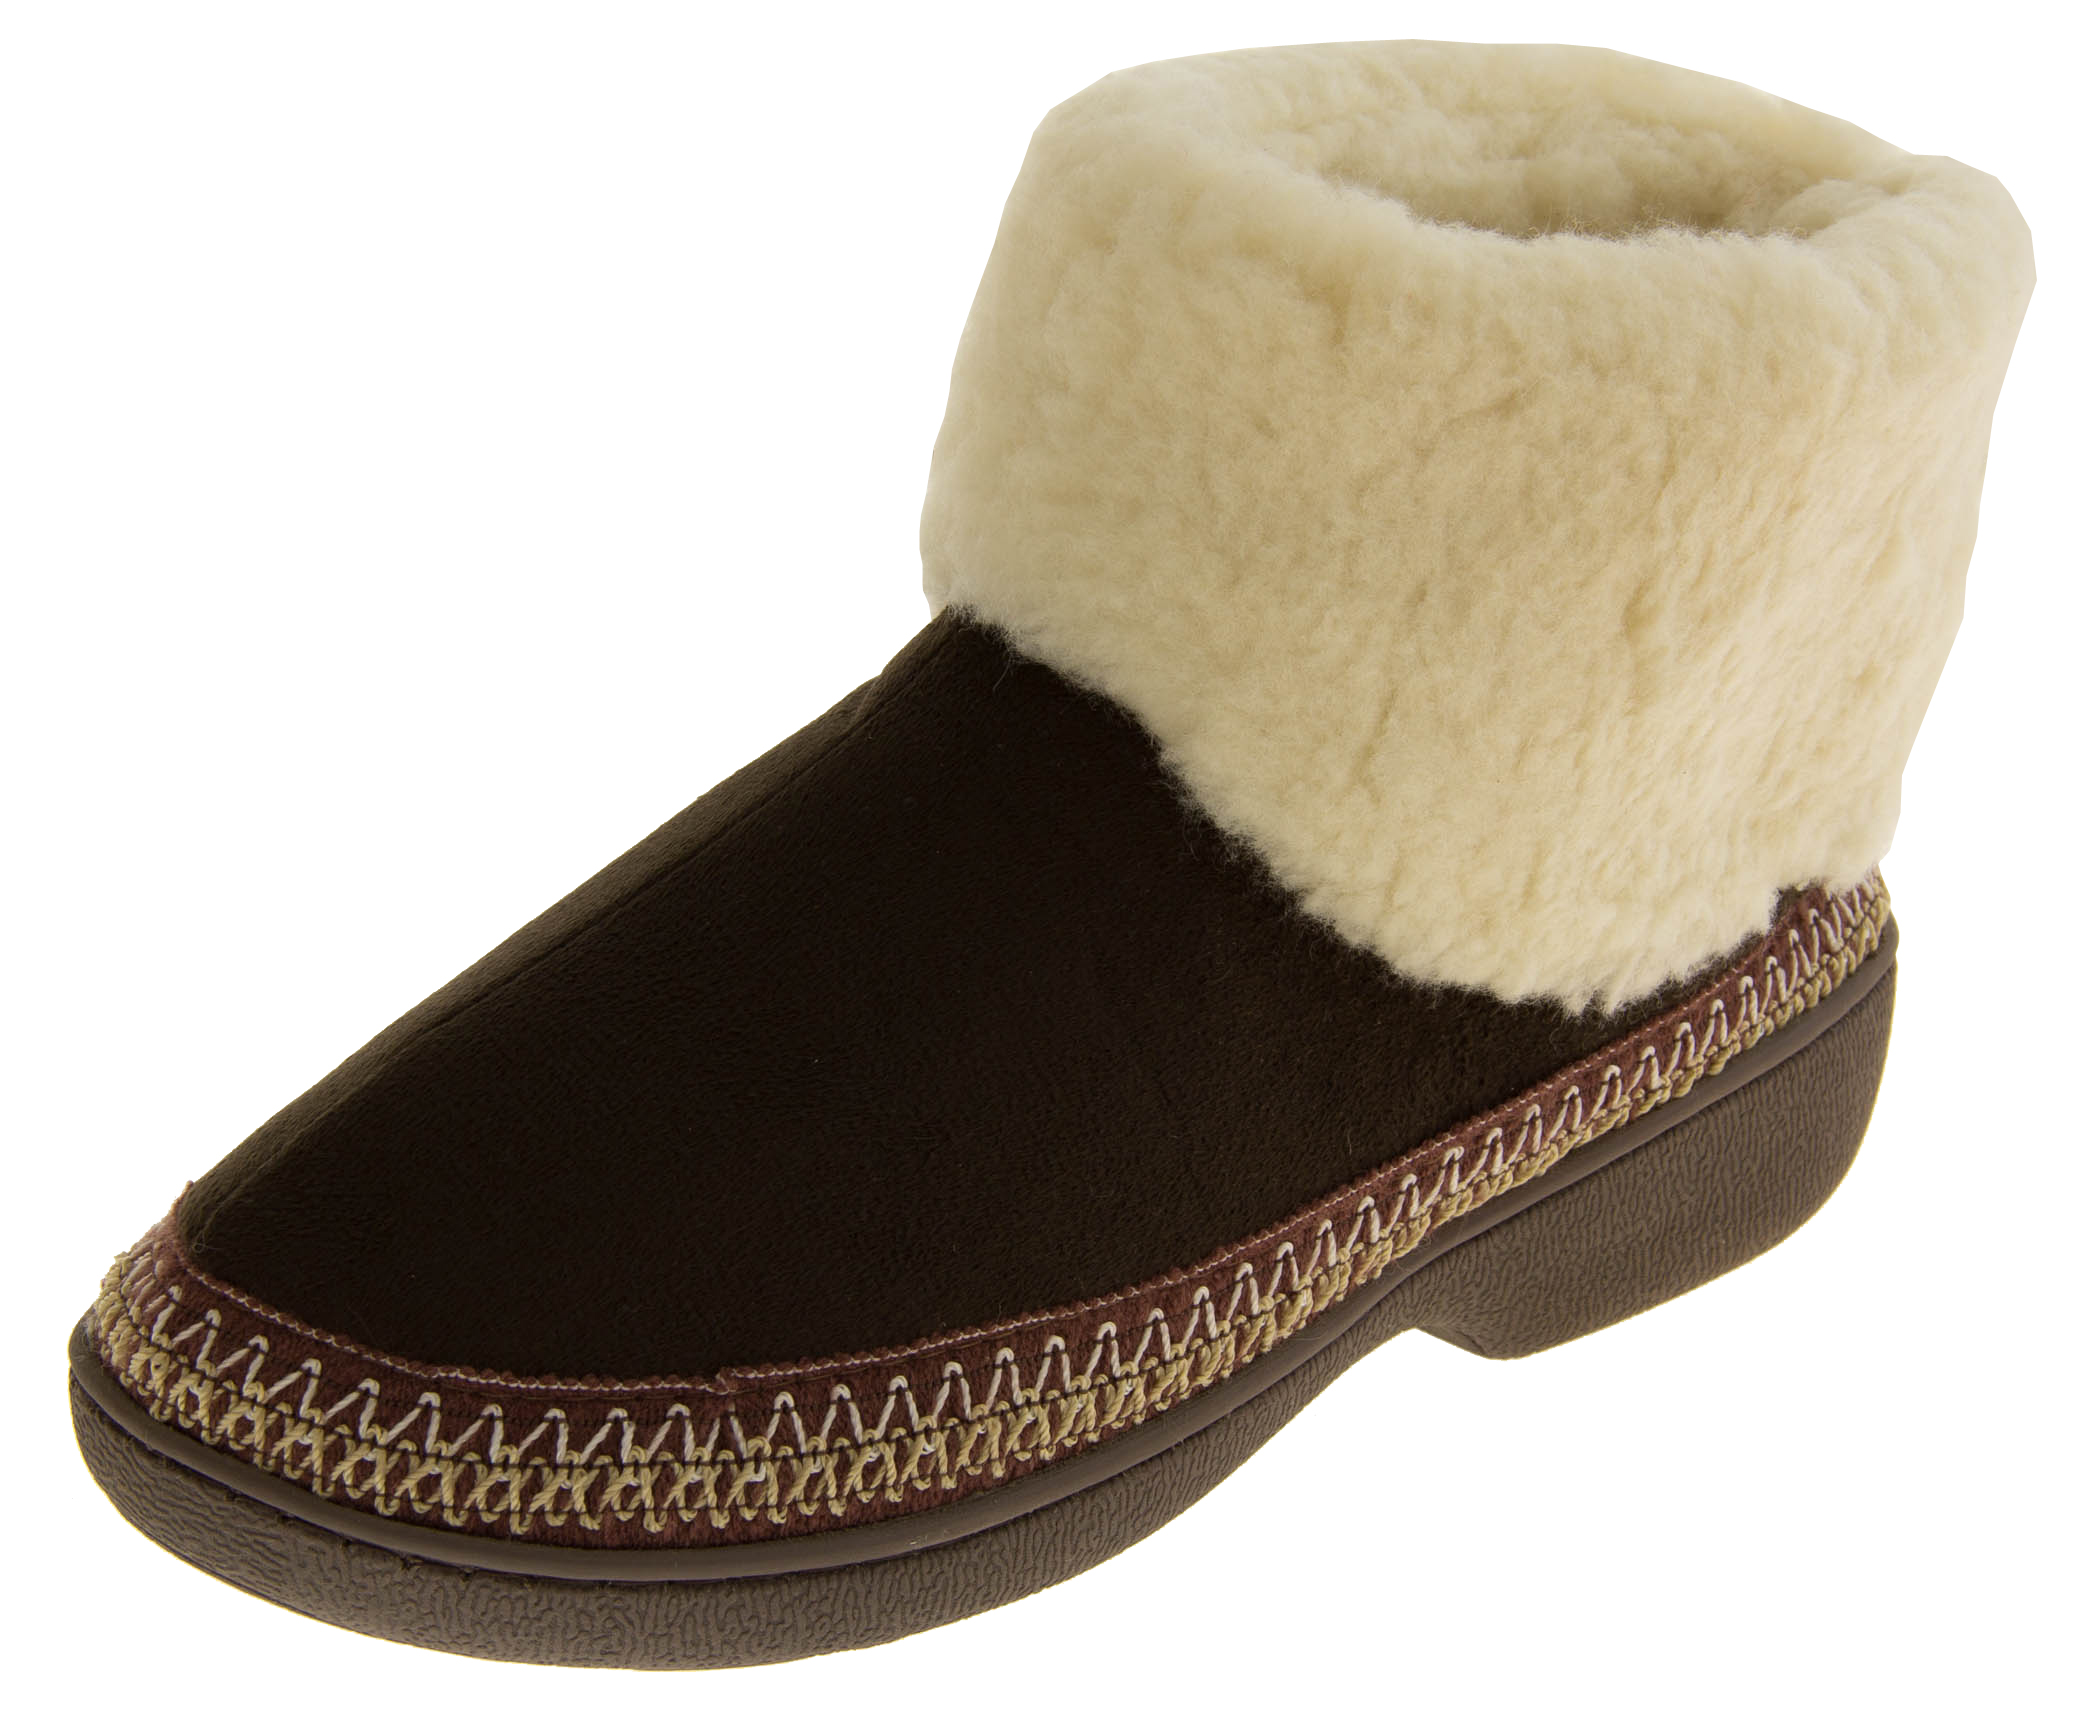 Womens Slipper Boots Winter Outdoor Sole Comfy Warm Ladies Slippers 3 4 5 6 7 8 | EBay